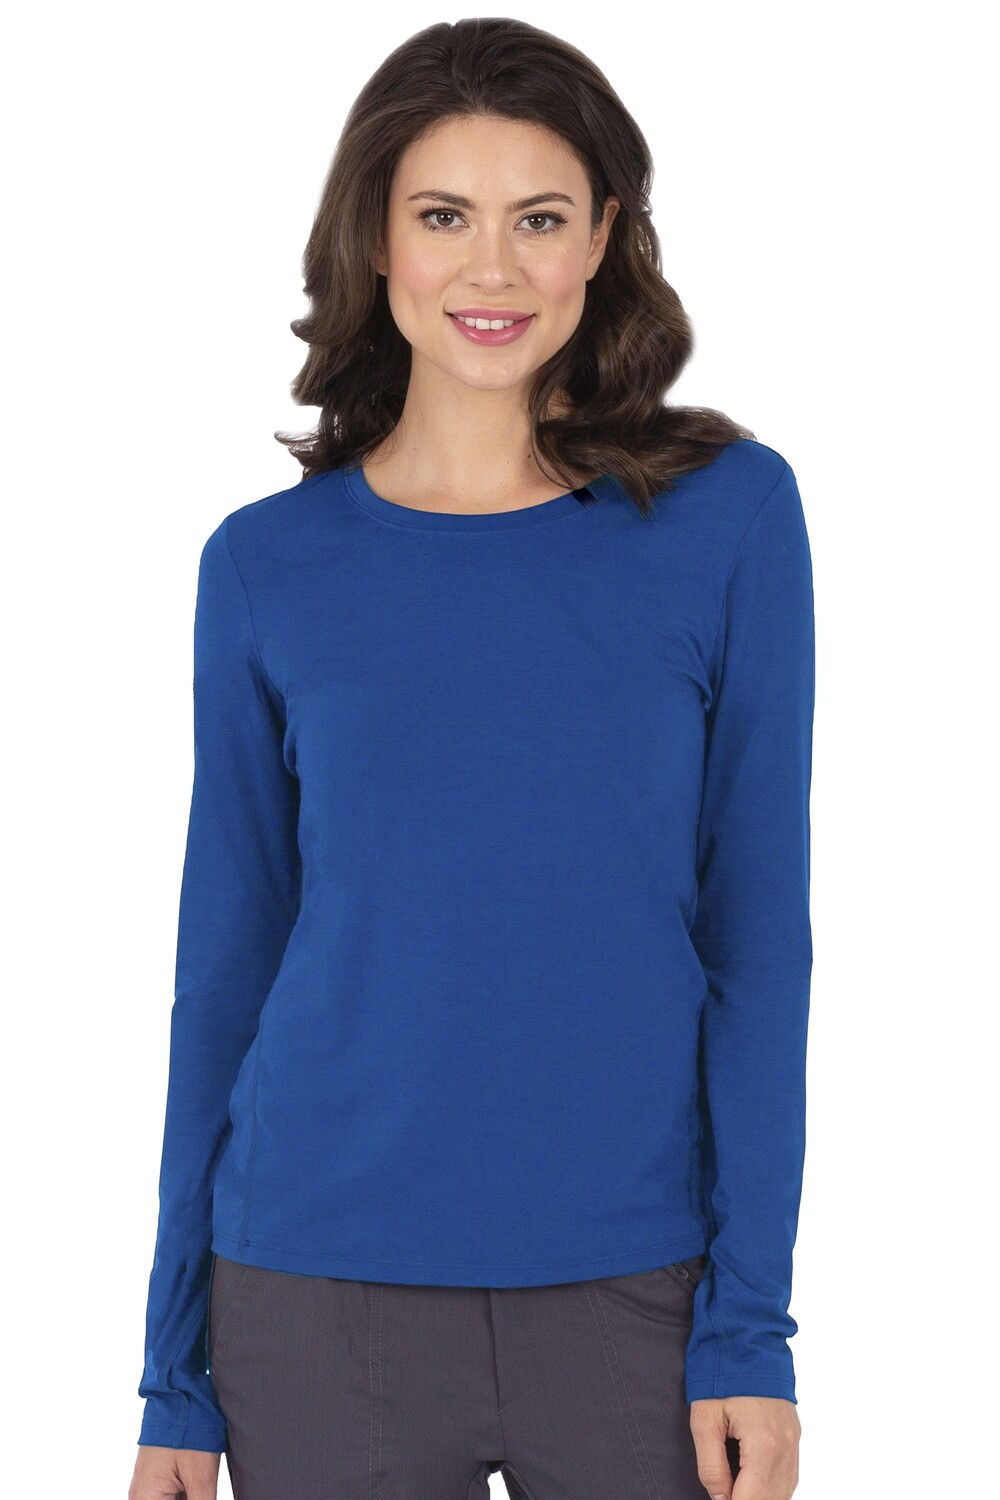 5051 MACKENZIE TEE 2XL ROYAL BLUE